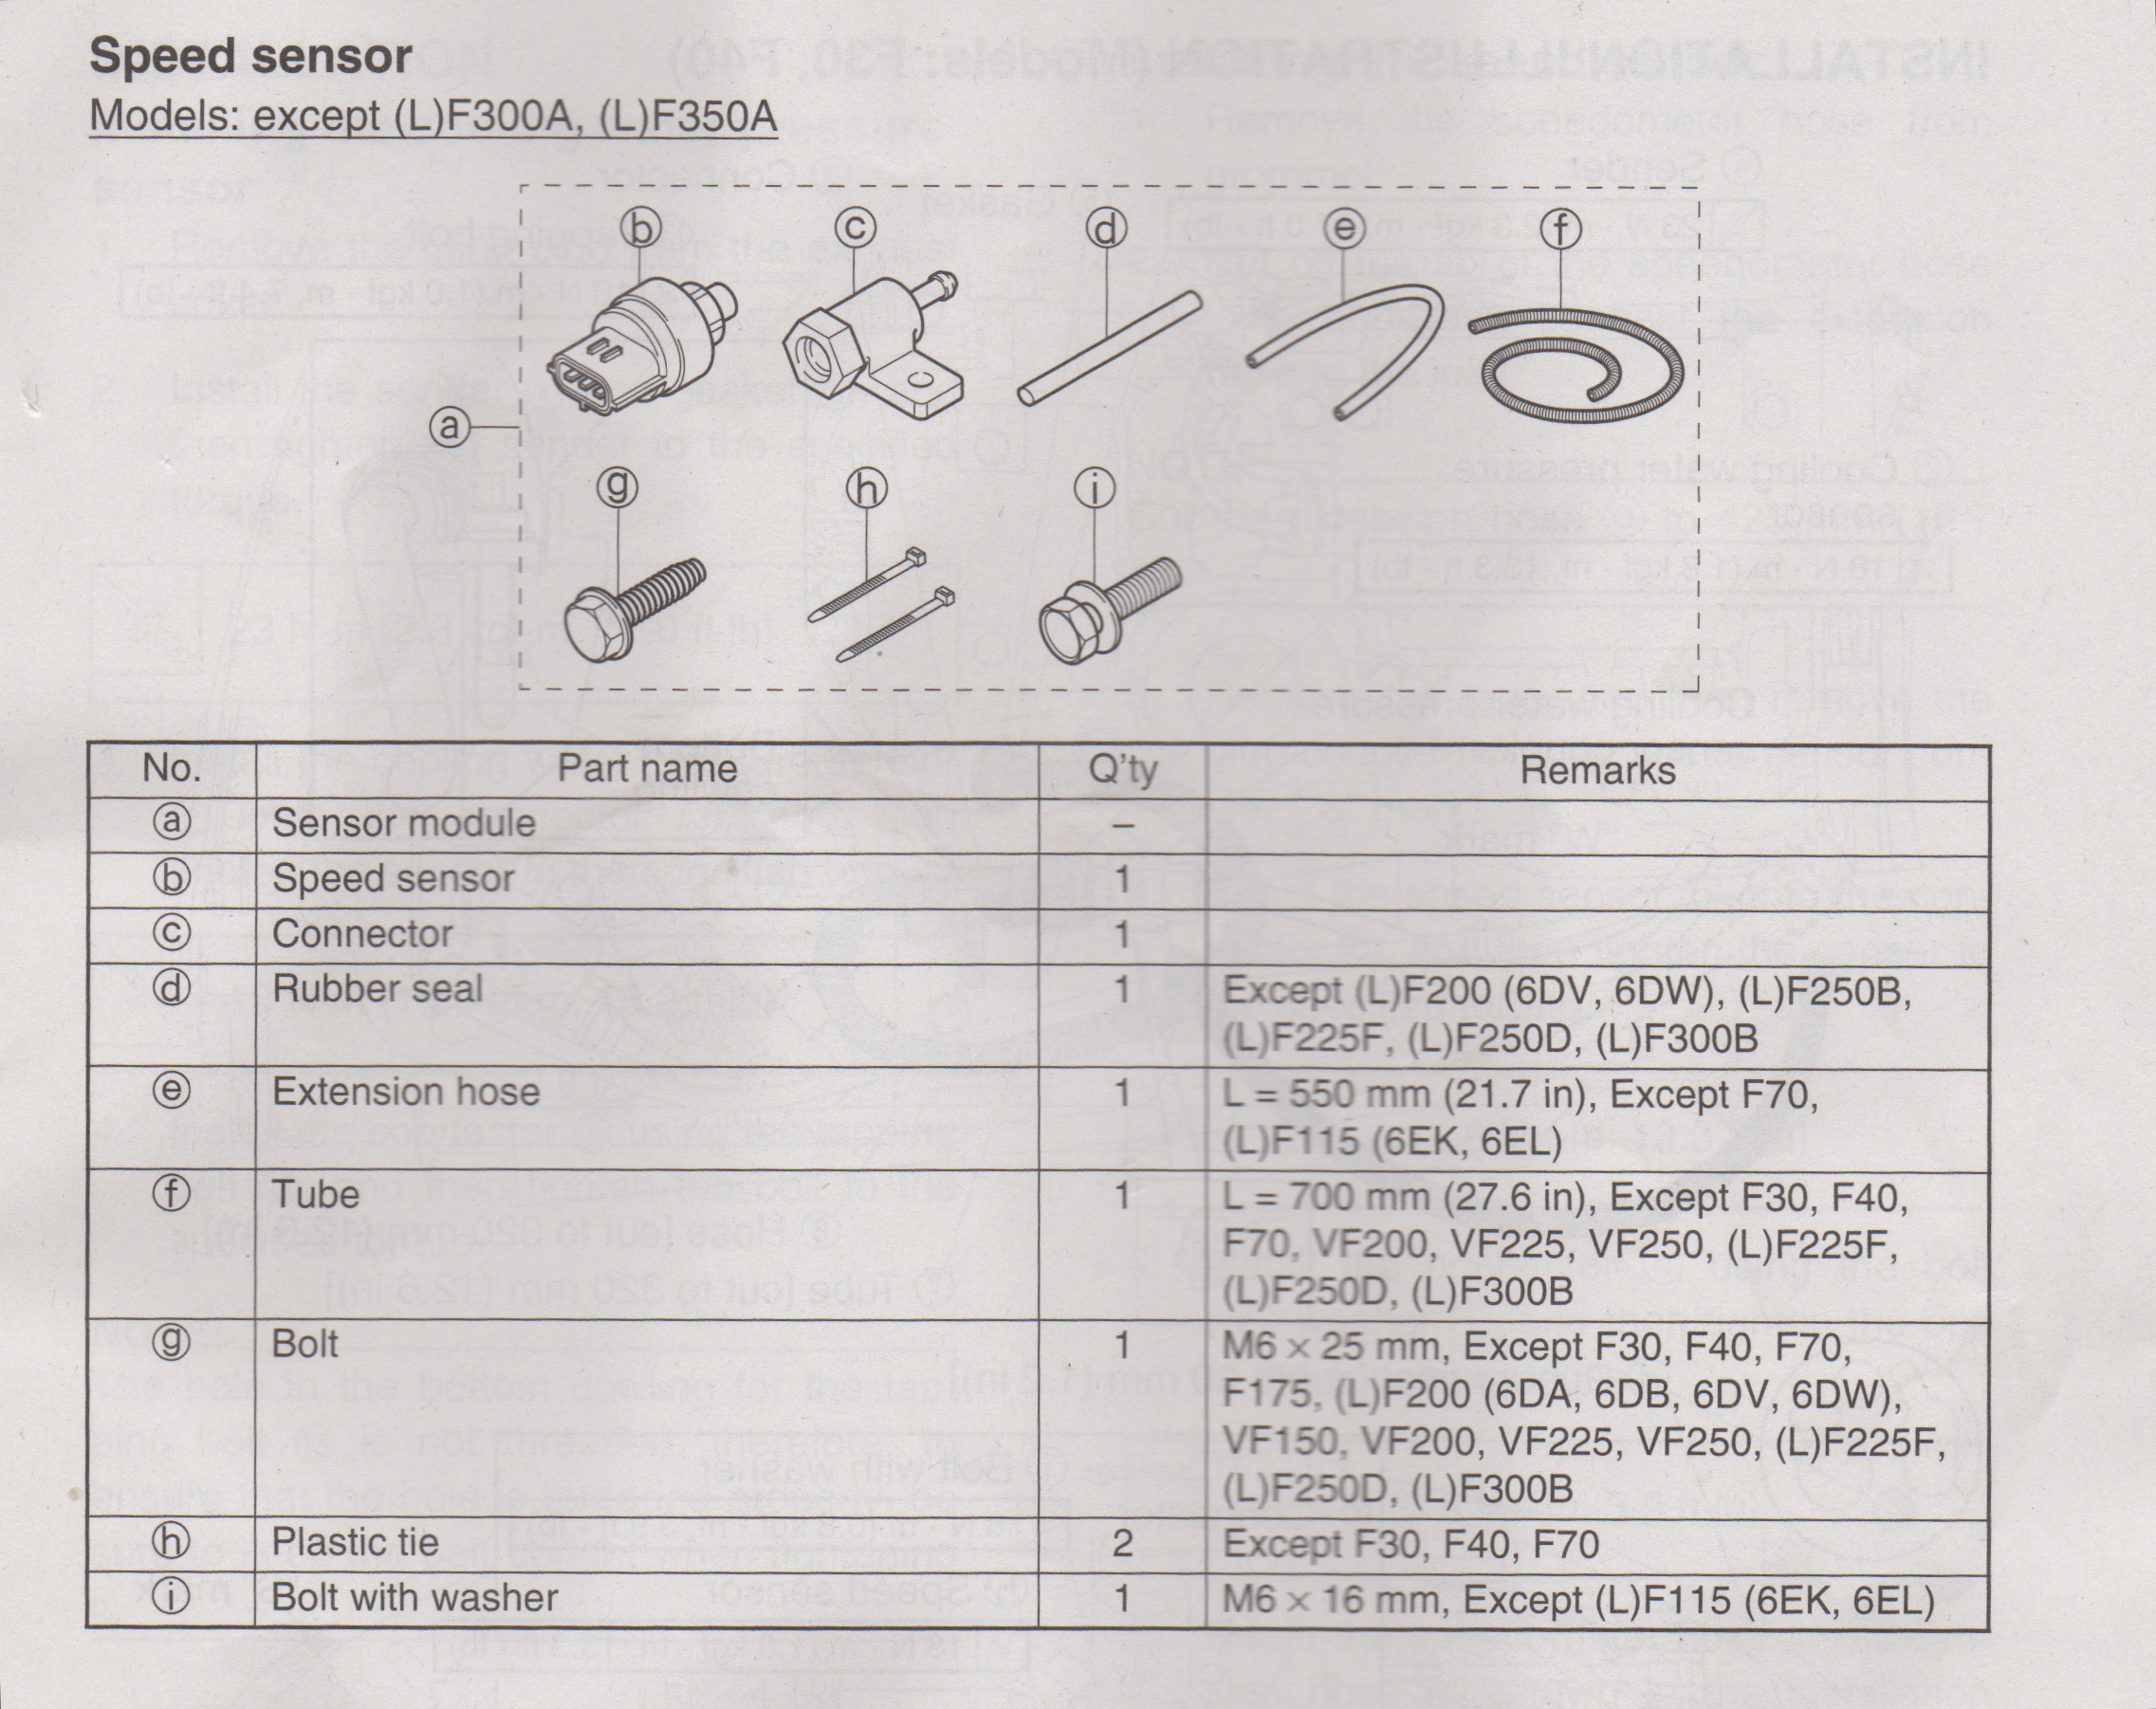 yamaha water pressure speed sensor kit